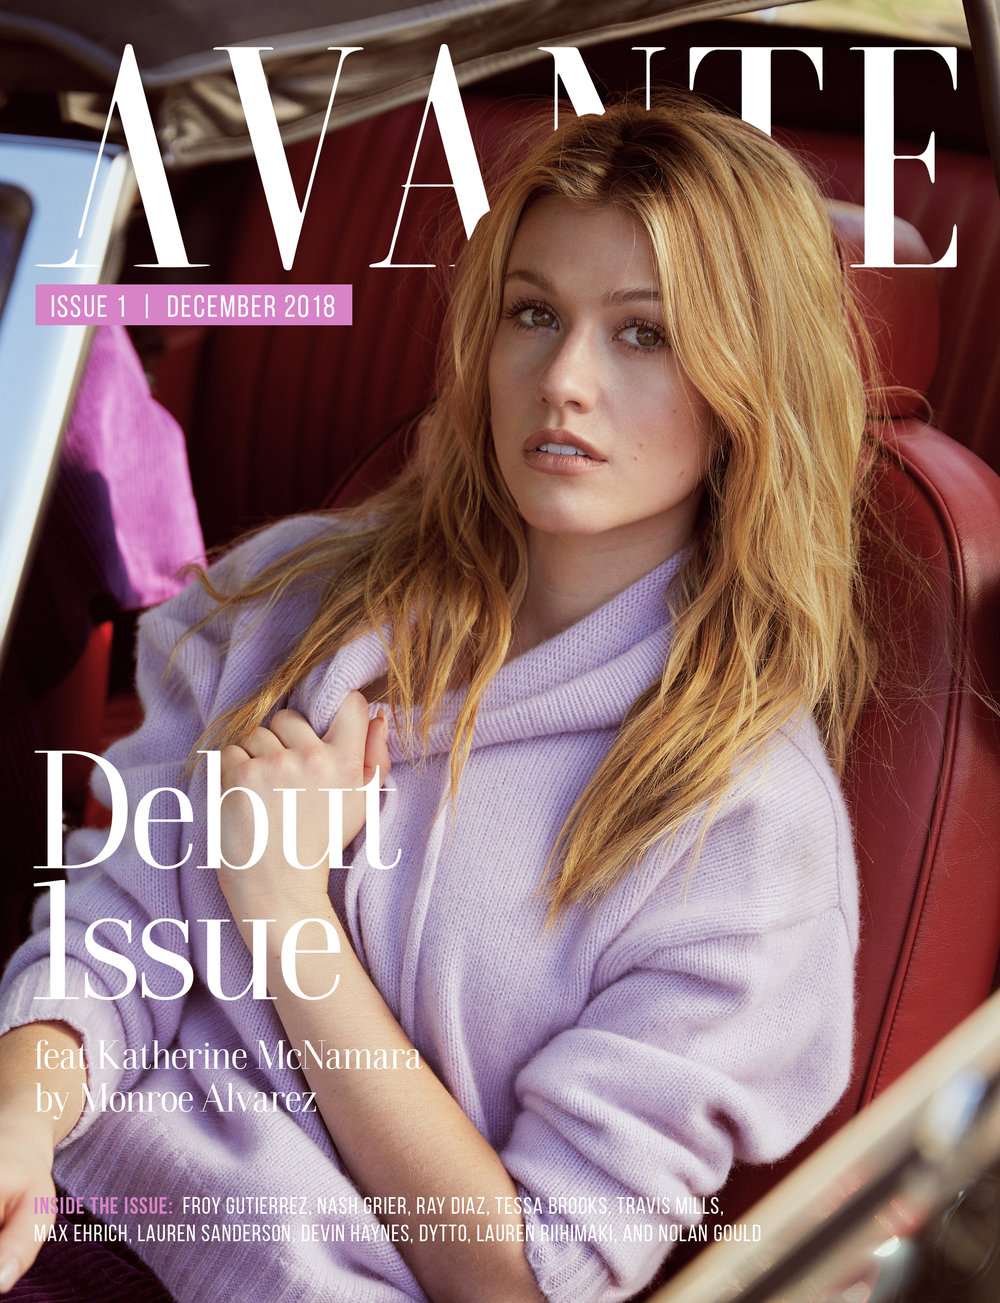 Kat McNamara for Avante Magazine December 2018